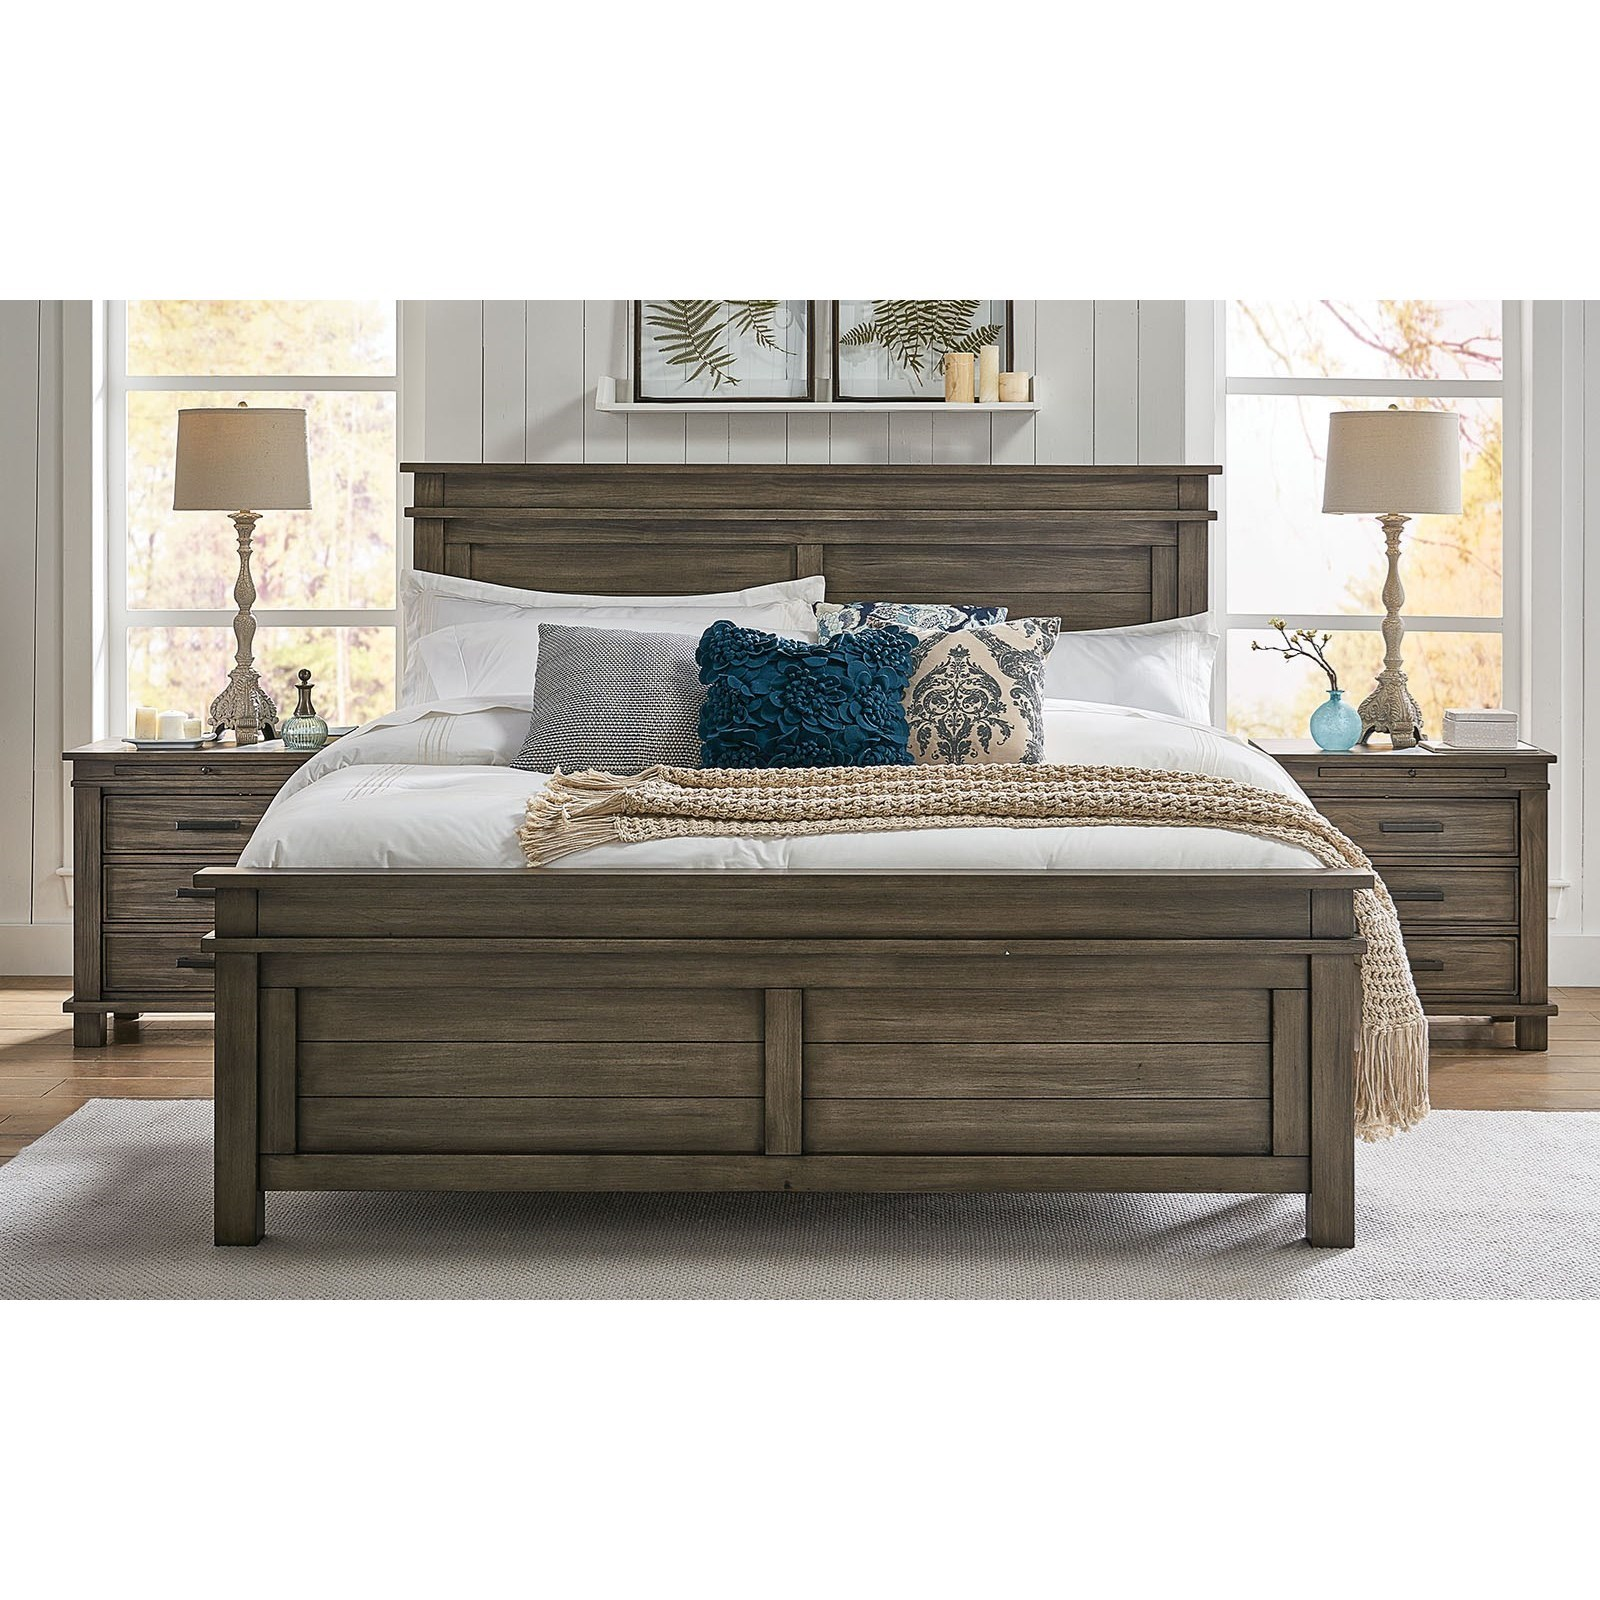 Glacier Point Full Panel Bed by A-A at Walker's Furniture